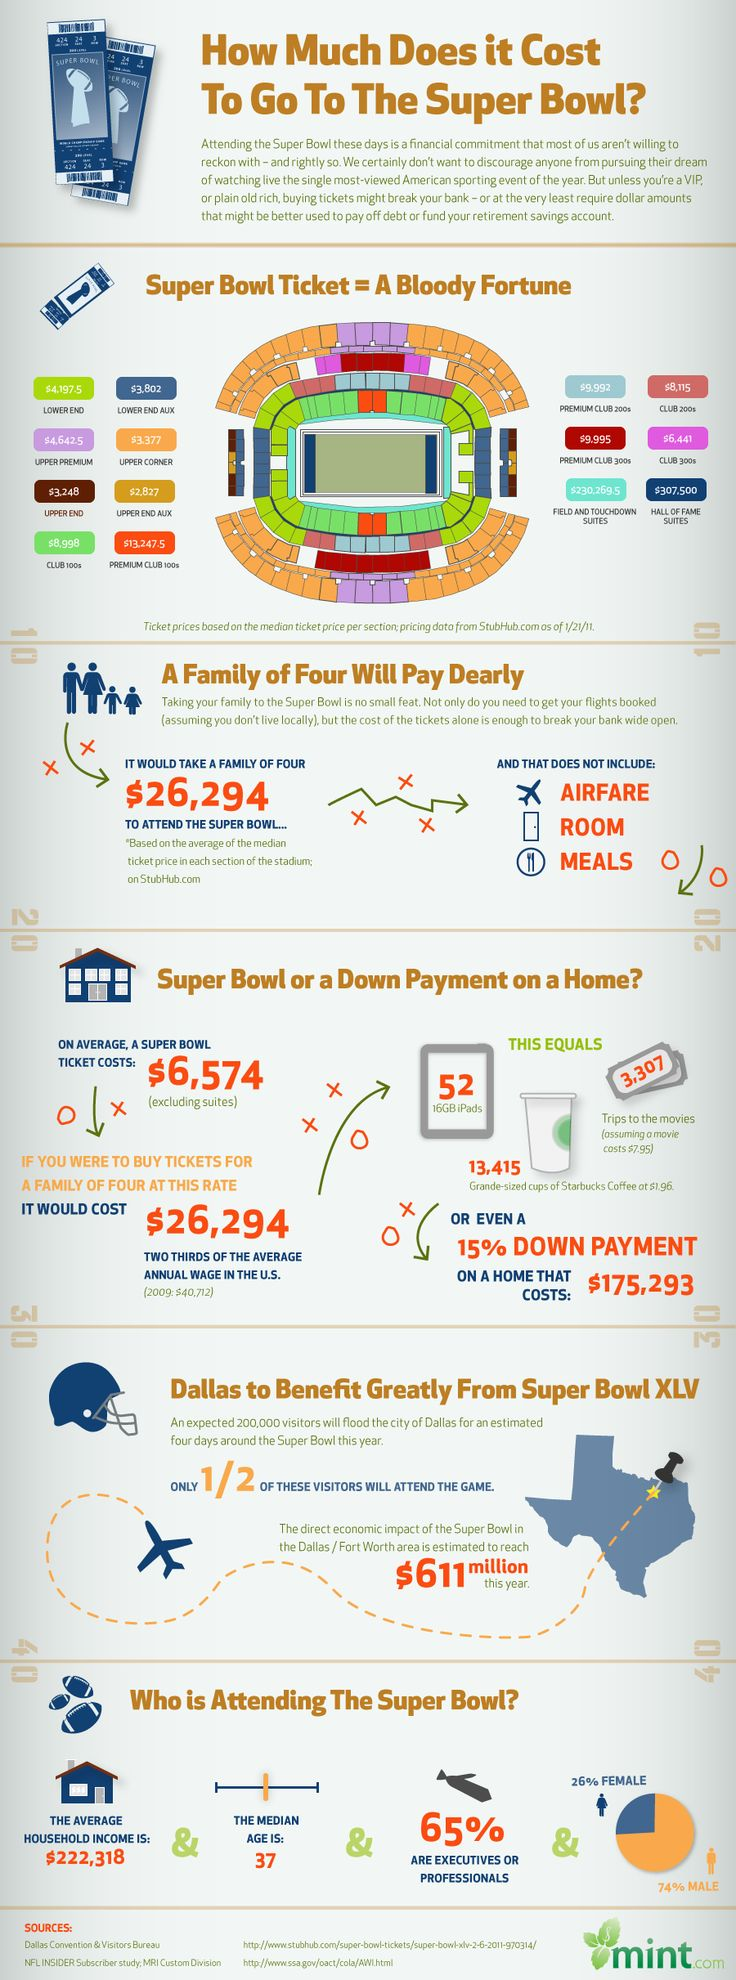 Ever tried to bring a family of four to the Super Bowl? You'd have to forfeit a fortune. This infographic reviews Super Bowl ticket prices and how e